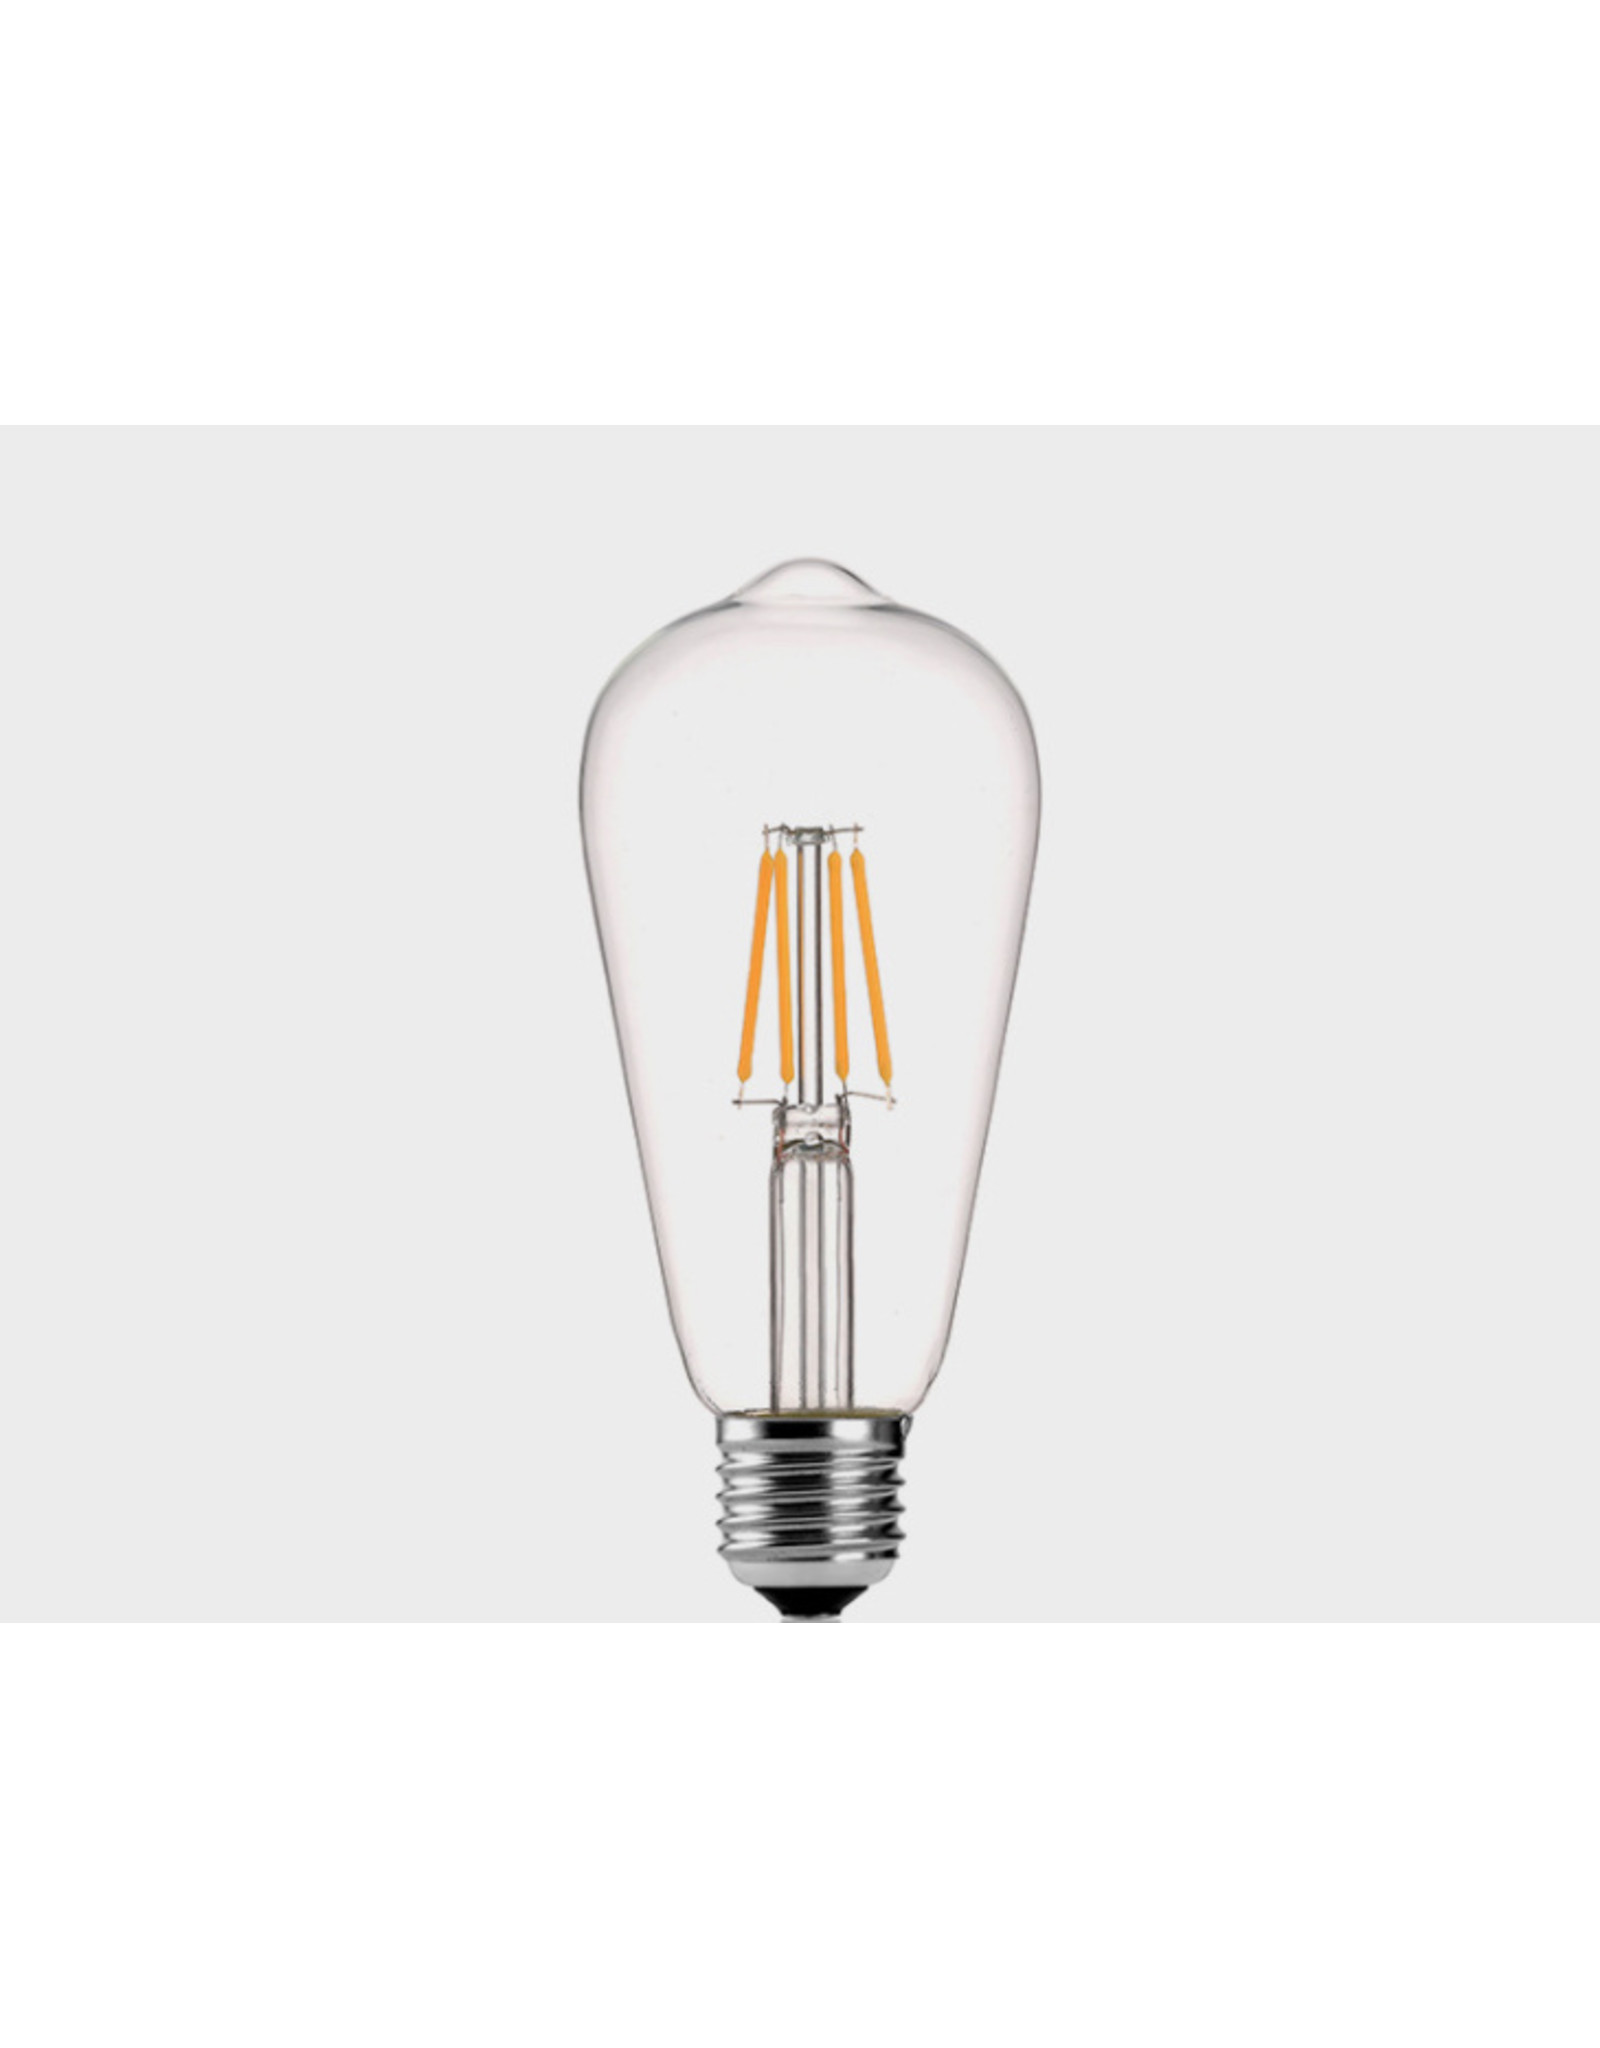 Lights ST64 - 2W - 2700K - E27 - CLEAR - 220V - DIMMABLE